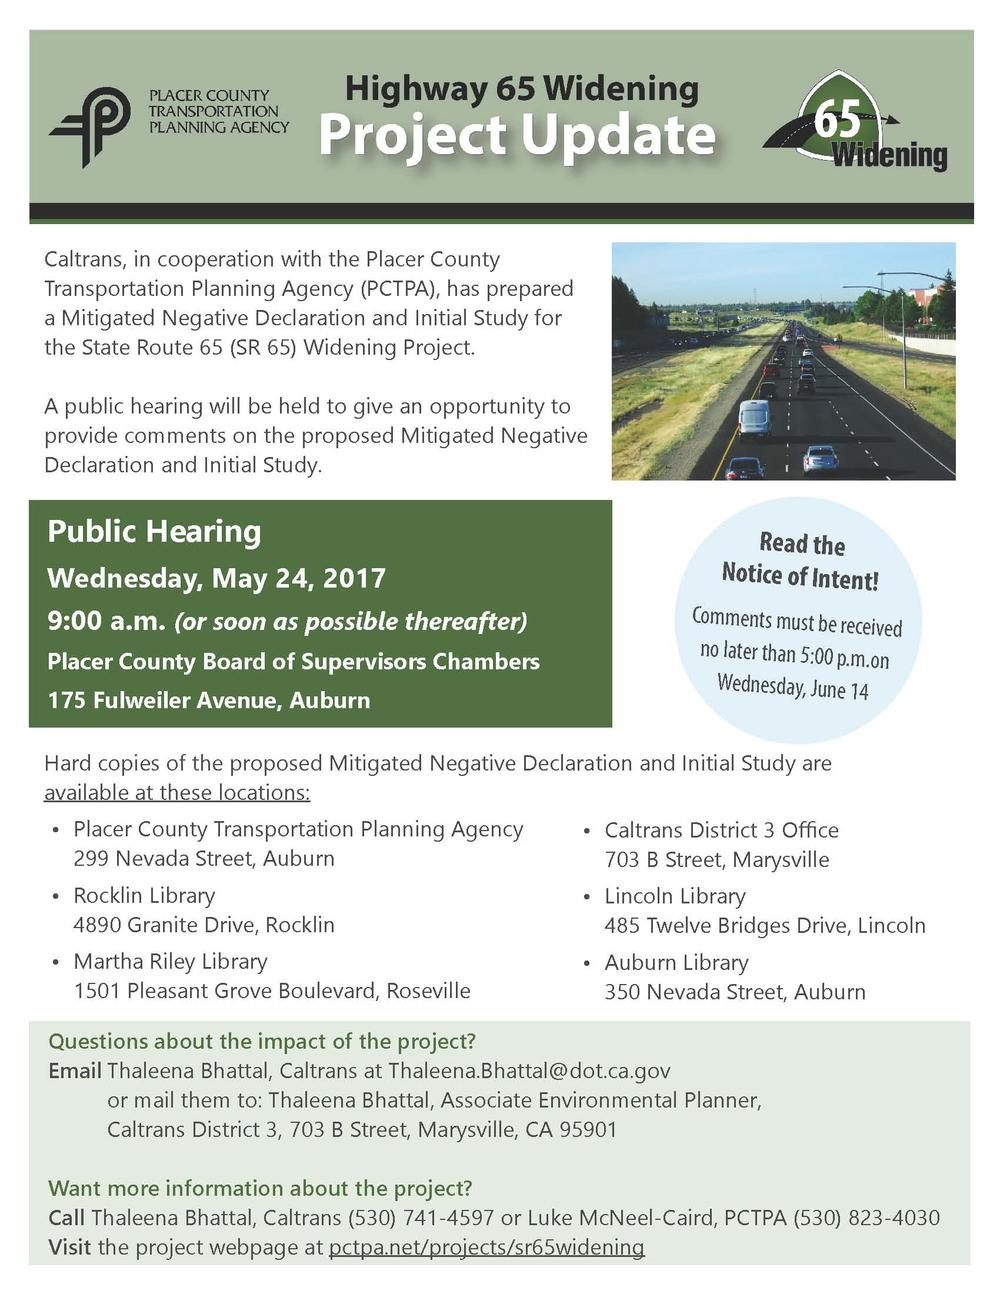 Highway 65 Widening Project Flyer